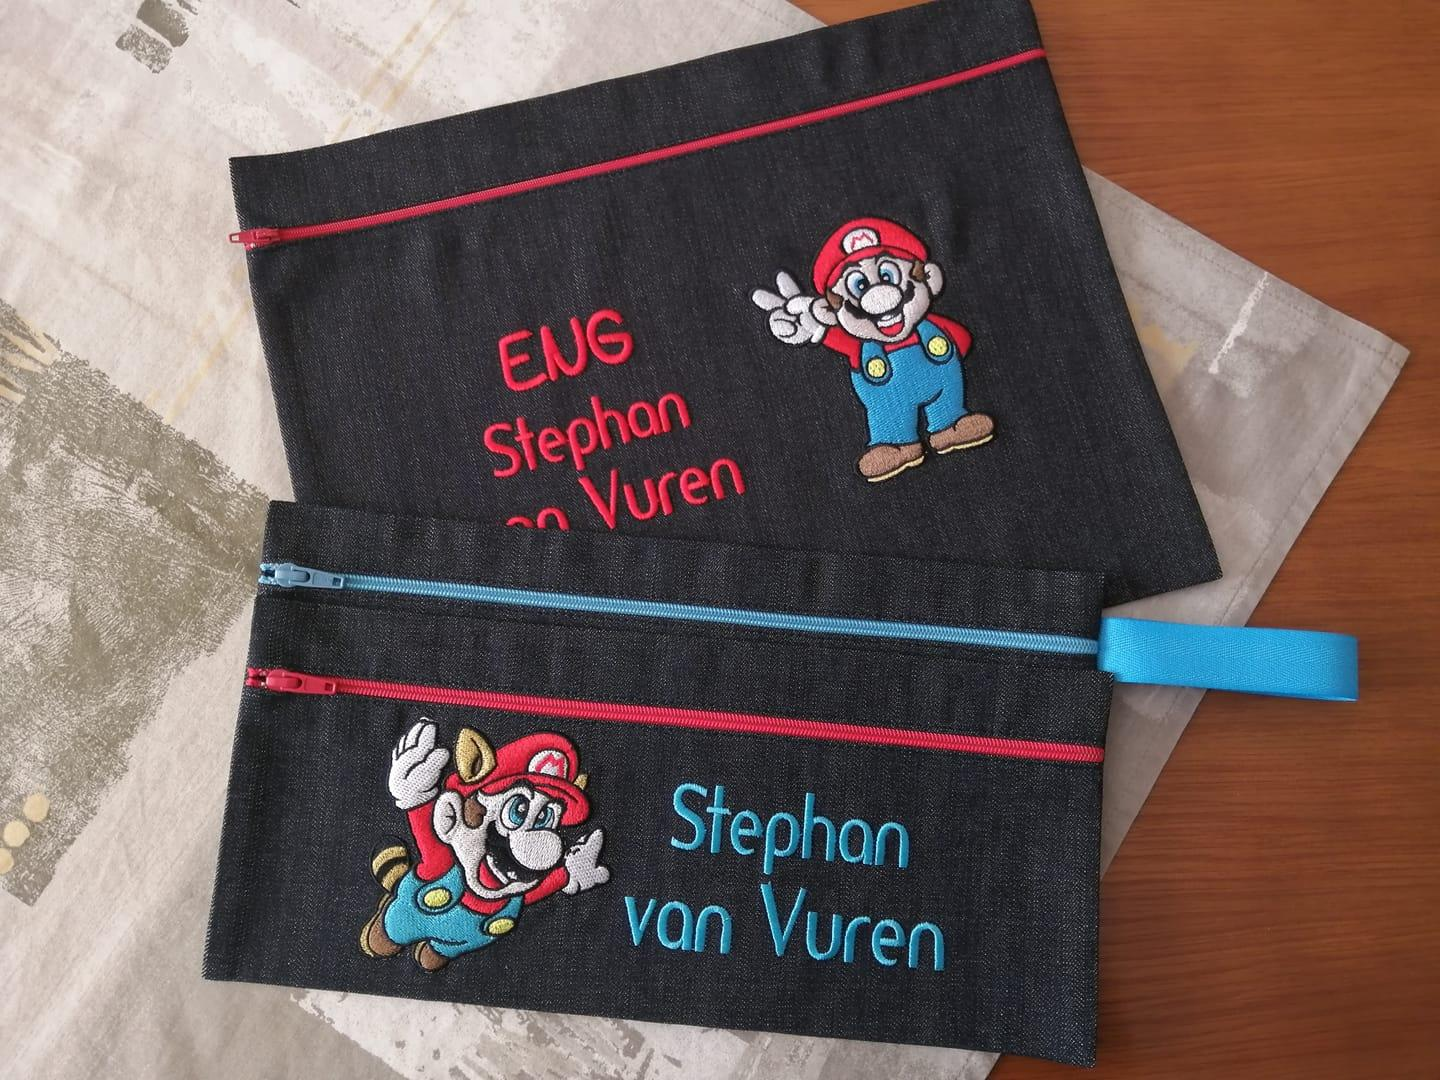 Set of embroidered handbags with Mario designs